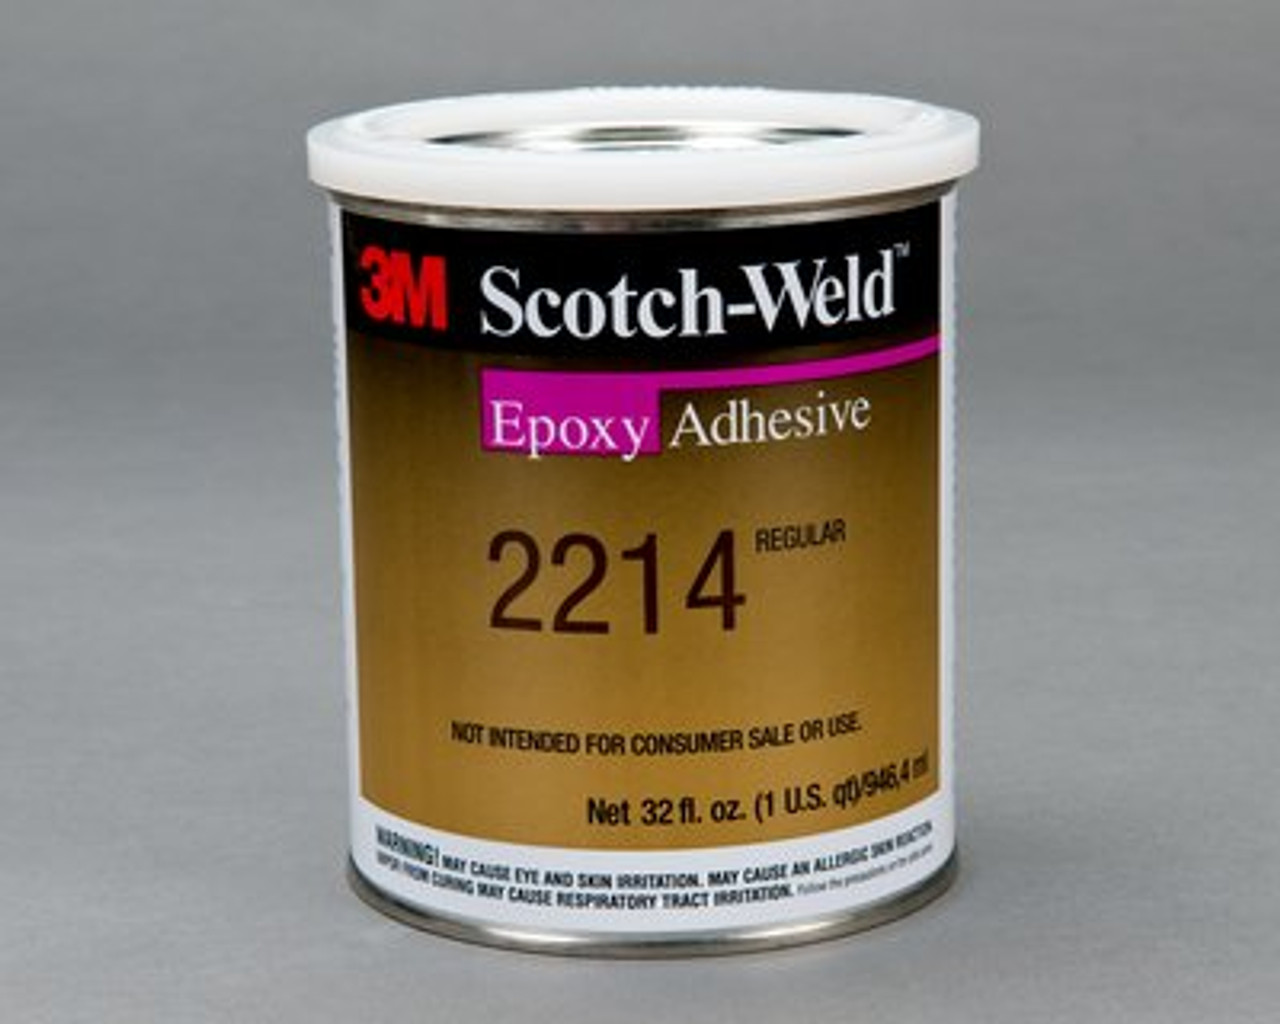 3M™ Scotch-Weld™ Epoxy Adhesive 2214 Hi-Temp Gray, 6 fl oz *NON RETURNABLE ITEM. ADDITIONAL SURCHARGE APPLIES TO THIS ITEM. CHARGE WILL NOT SHOW ON INITIAL CONFIRMATION. SEE PRODUCT DESCRIPTION FOR MORE INFO*